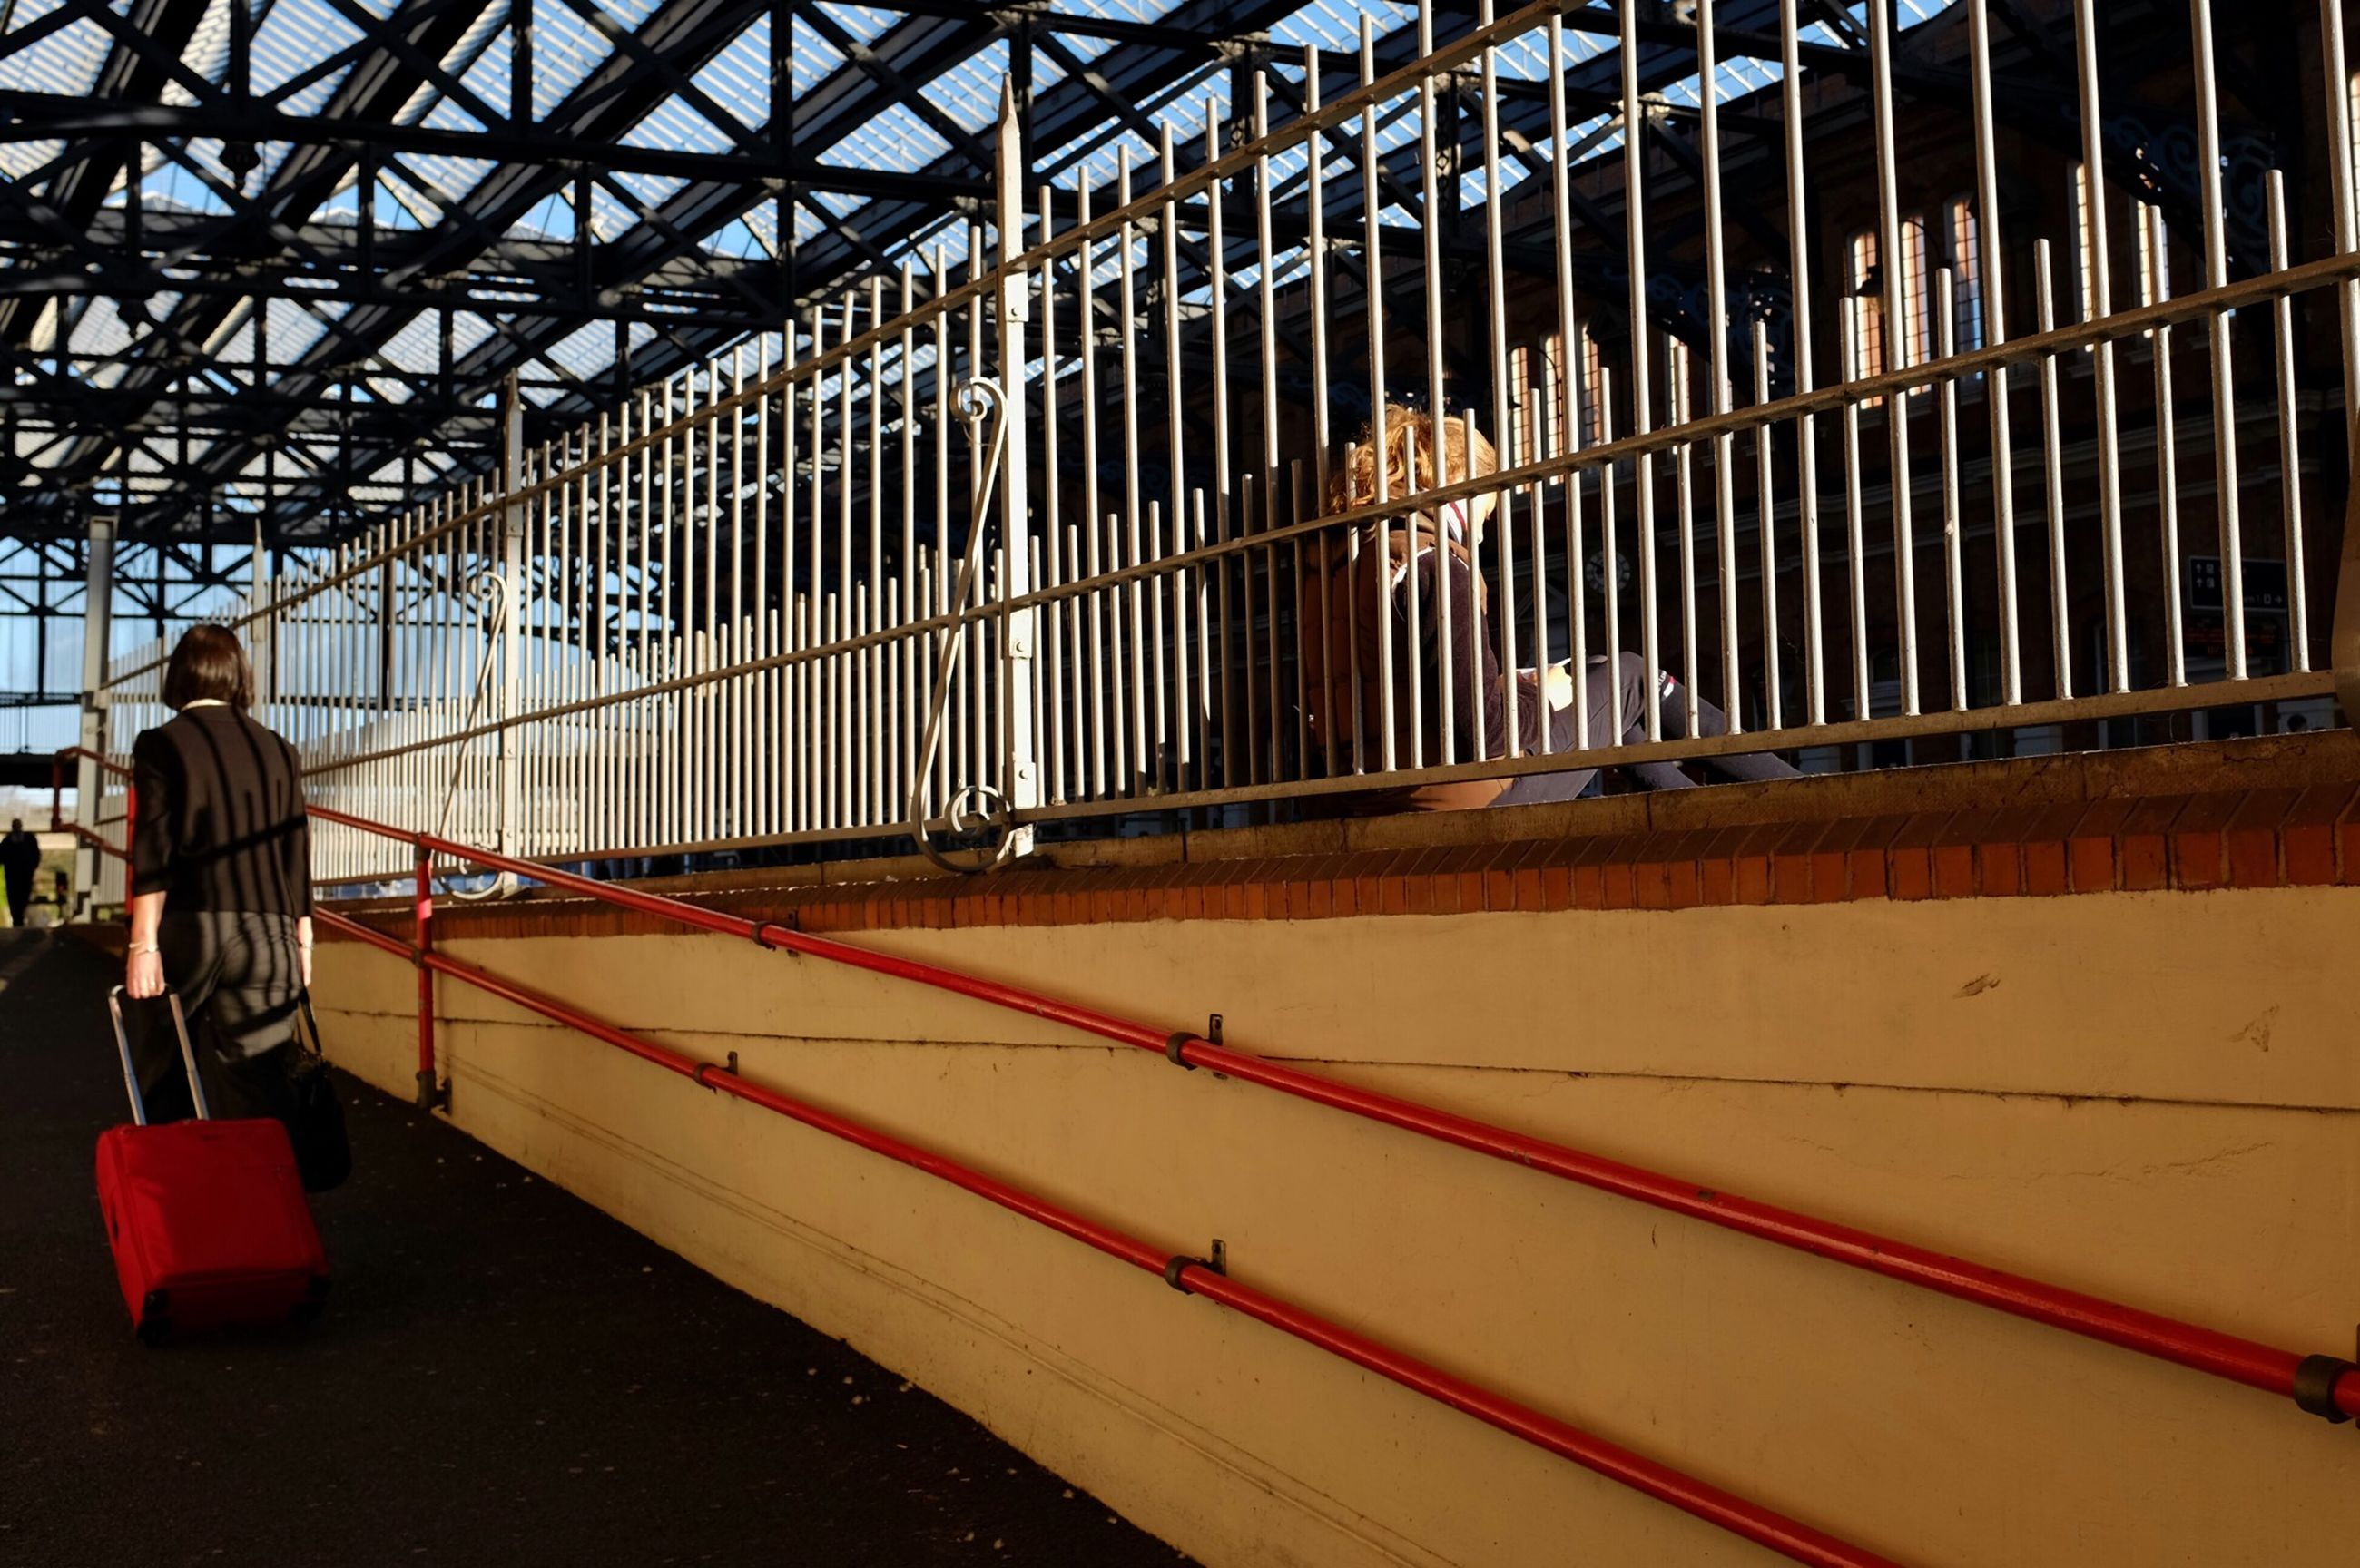 metal, railing, transportation, built structure, men, architecture, mode of transport, metallic, domestic animals, indoors, incidental people, lifestyles, day, animal themes, land vehicle, fence, travel, leisure activity, walking